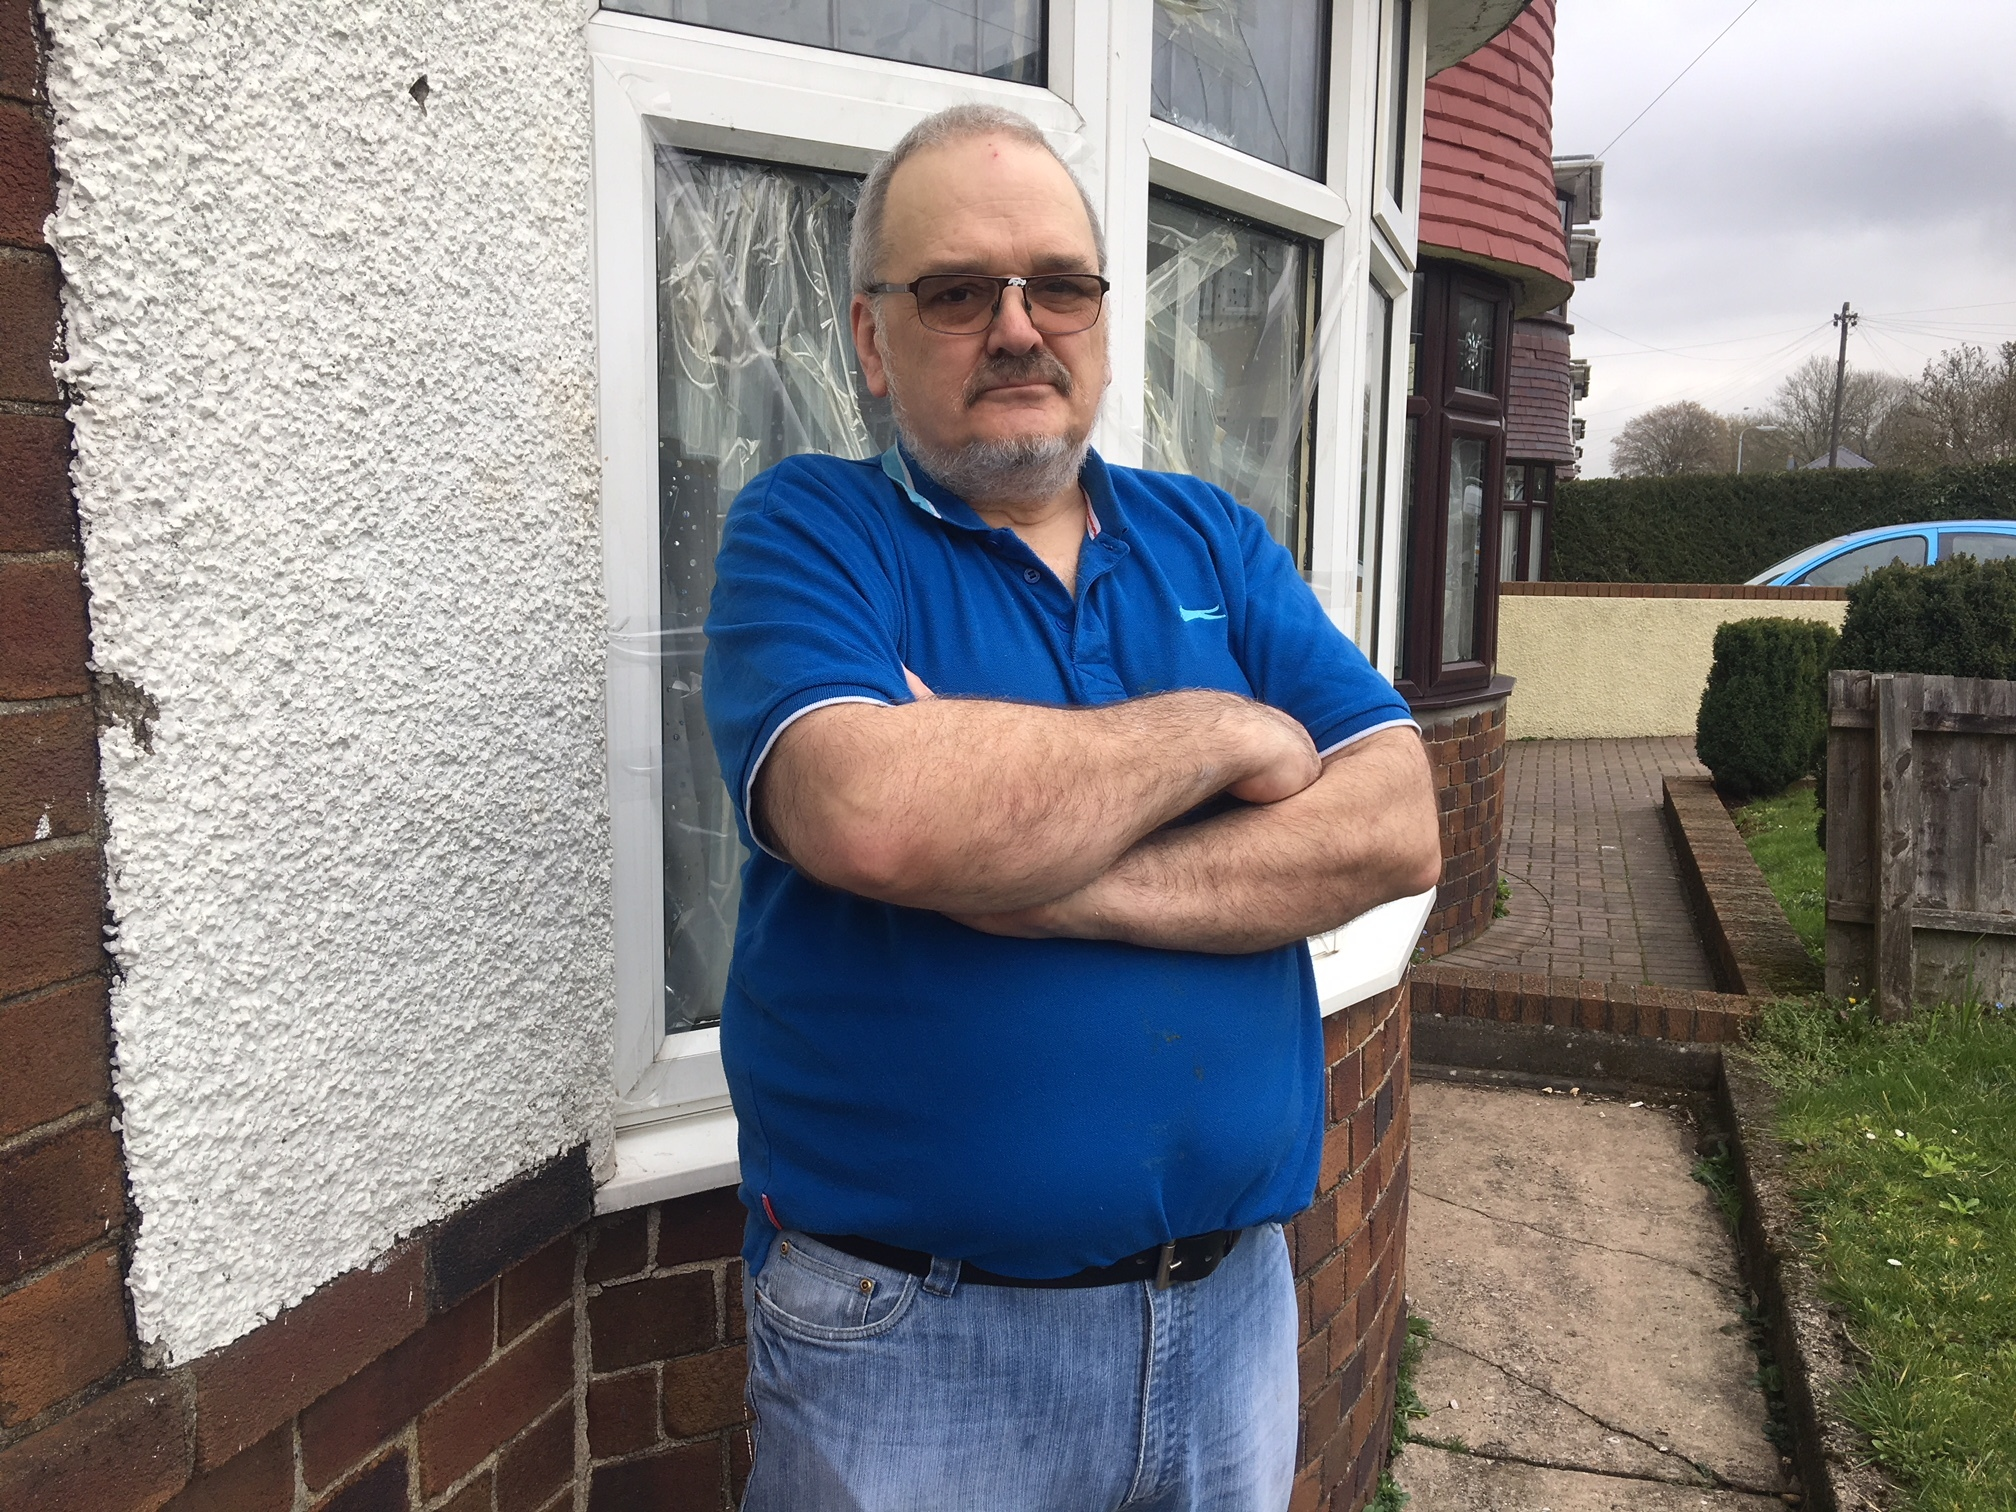 A Newport man who has had his motorhome destroyed and dog mess thrown at him by vandals is demanding immediate action